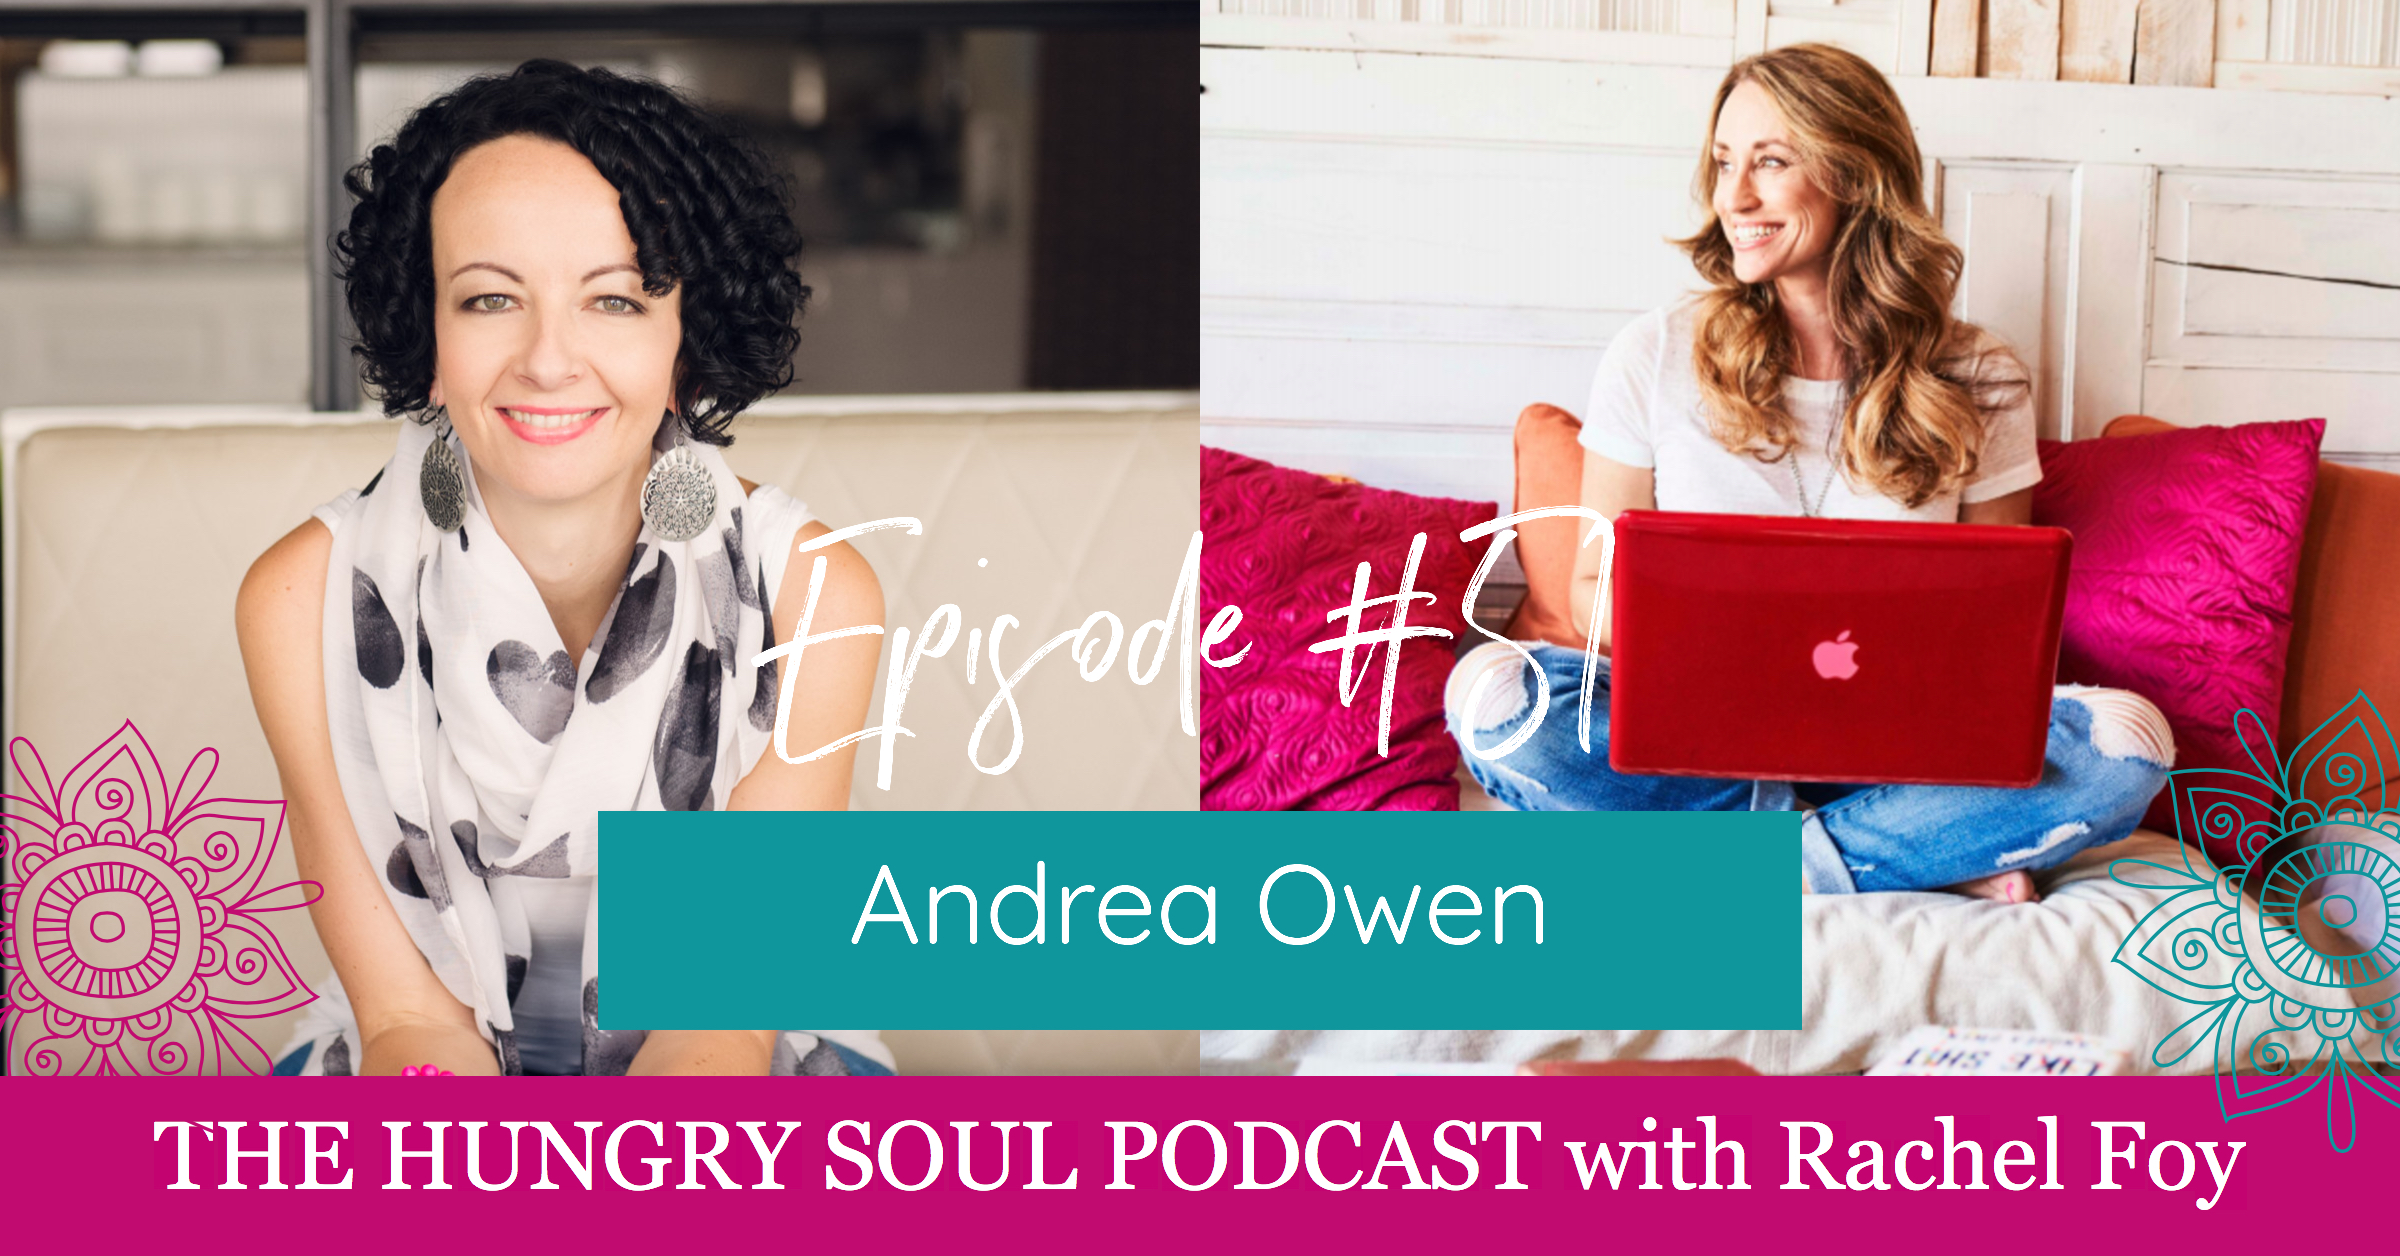 The Hungry Soul host Rachel Foy interviews Anne Ferguson